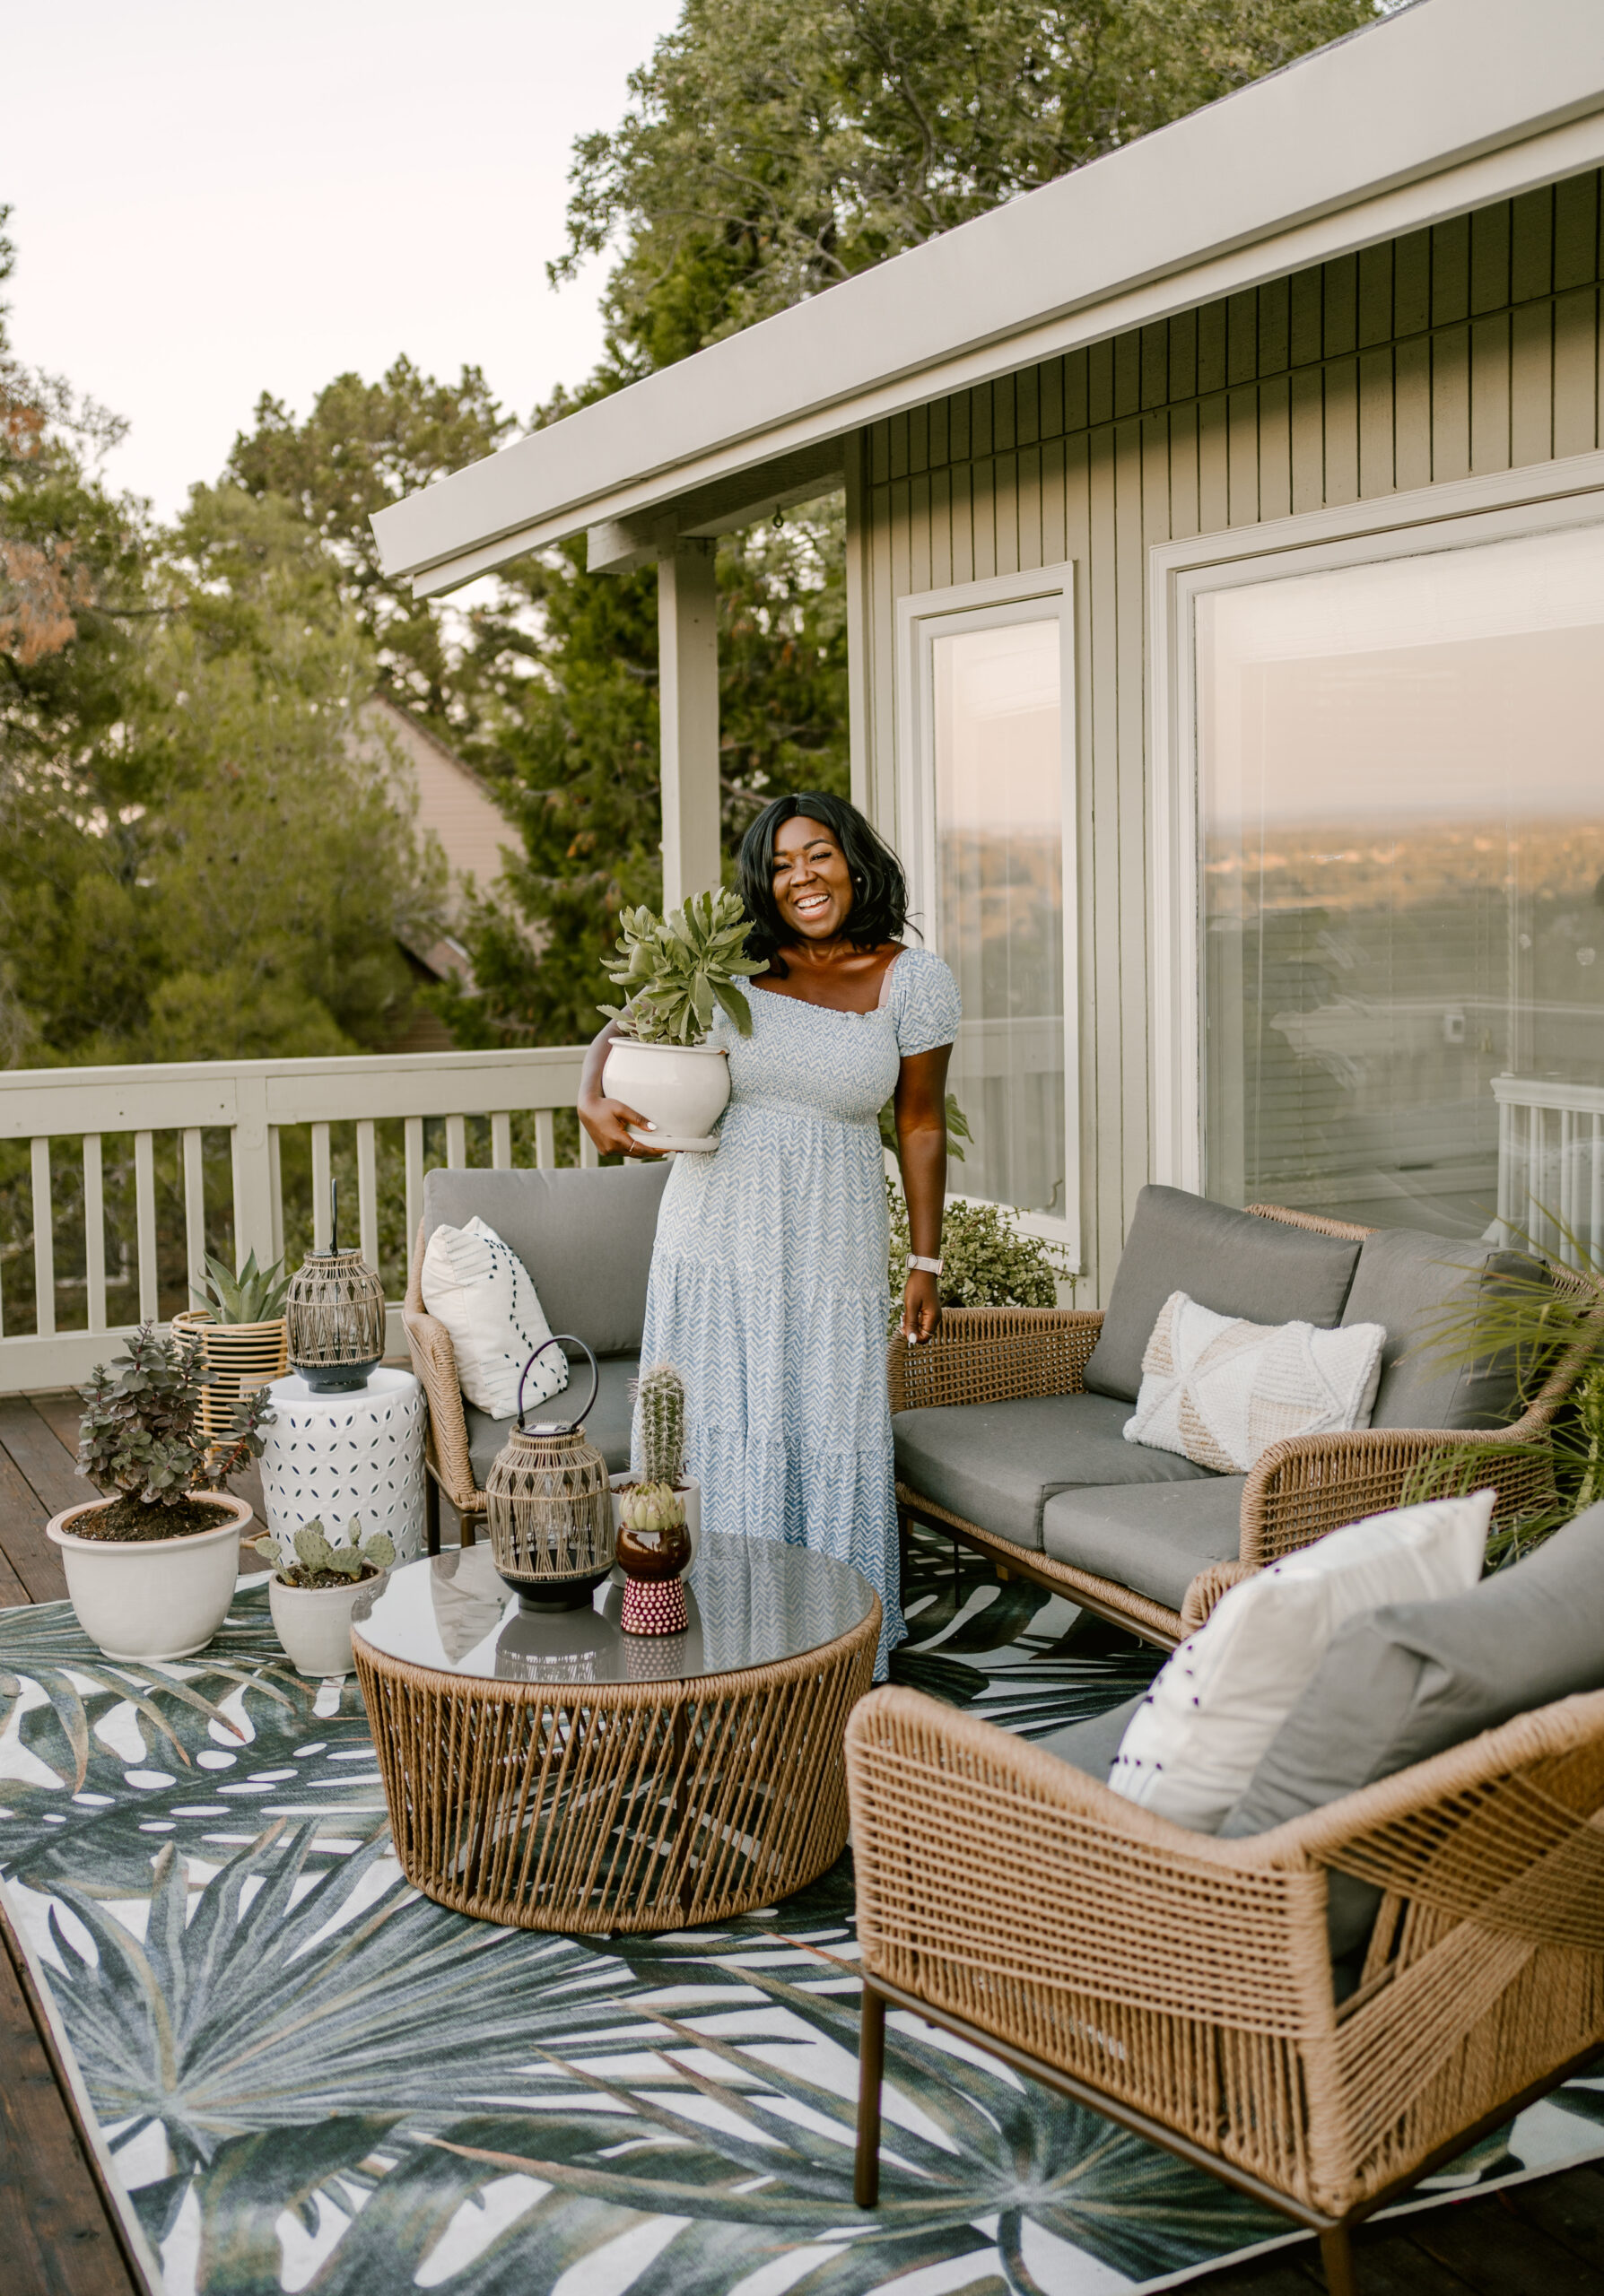 Ruthie Ridley Blog Styling My New Patio With Home Depot